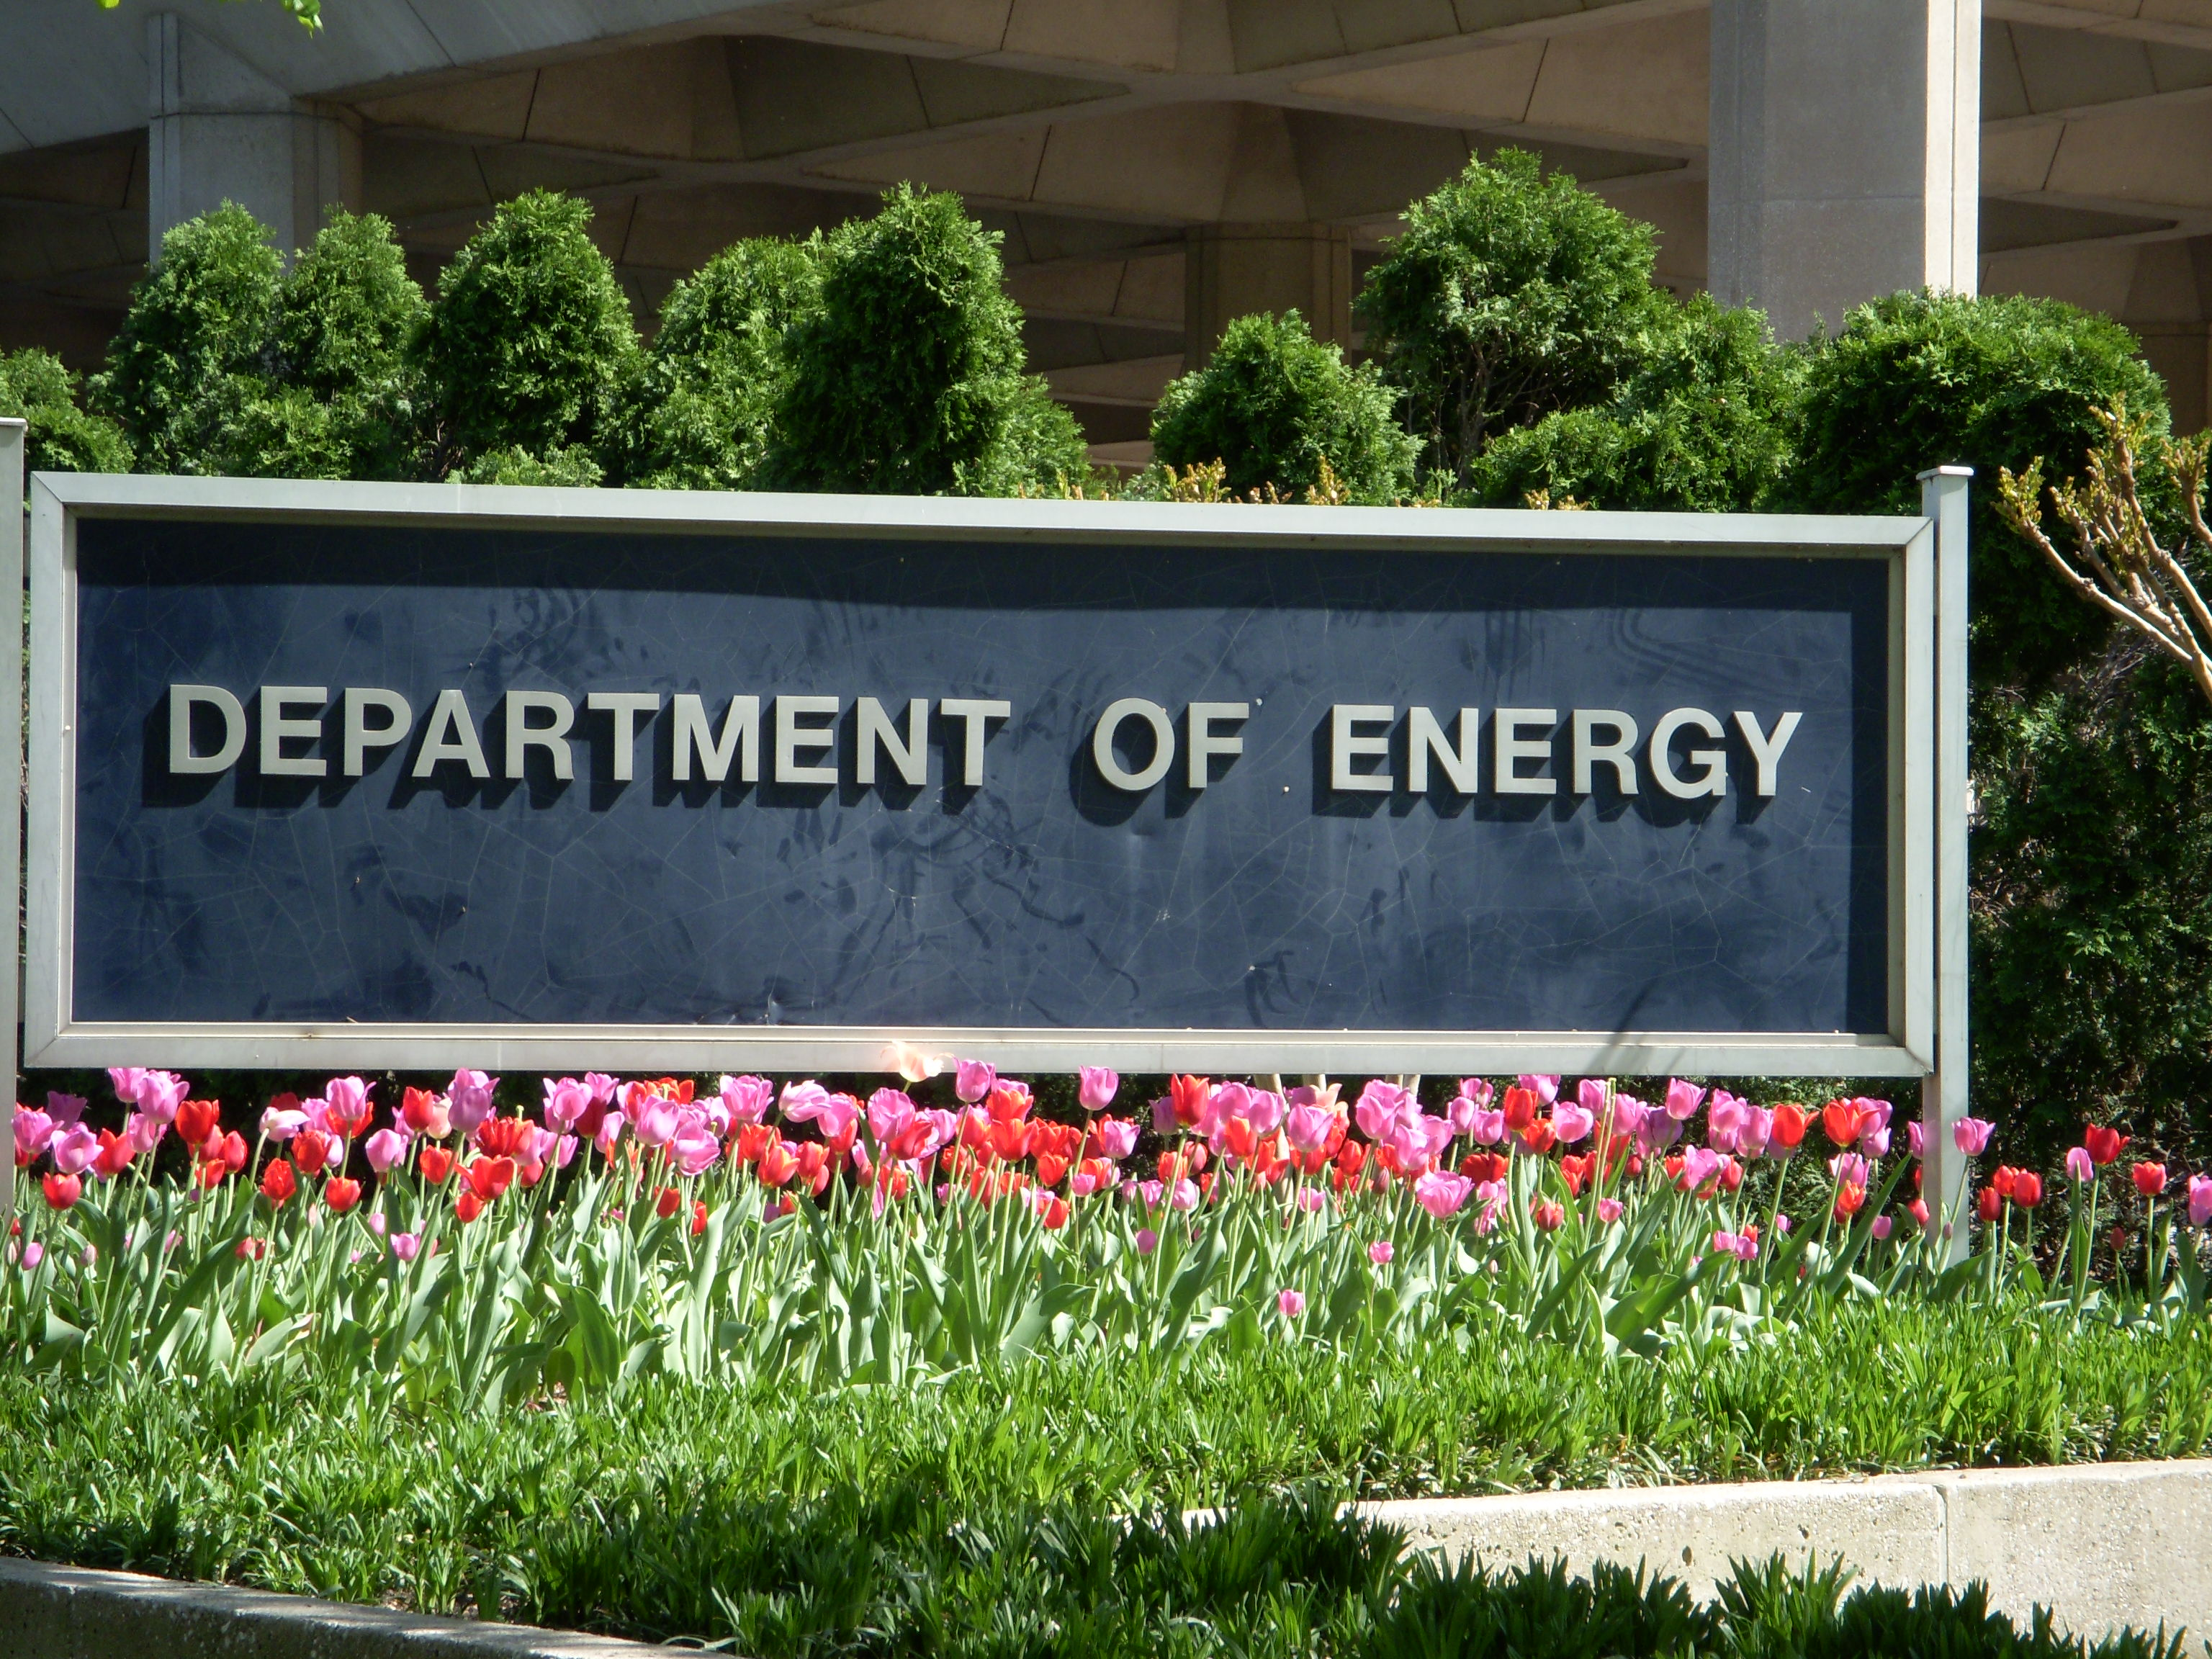 http://upload.wikimedia.org/wikipedia/commons/3/36/Department_of_Energy_Sign.jpg